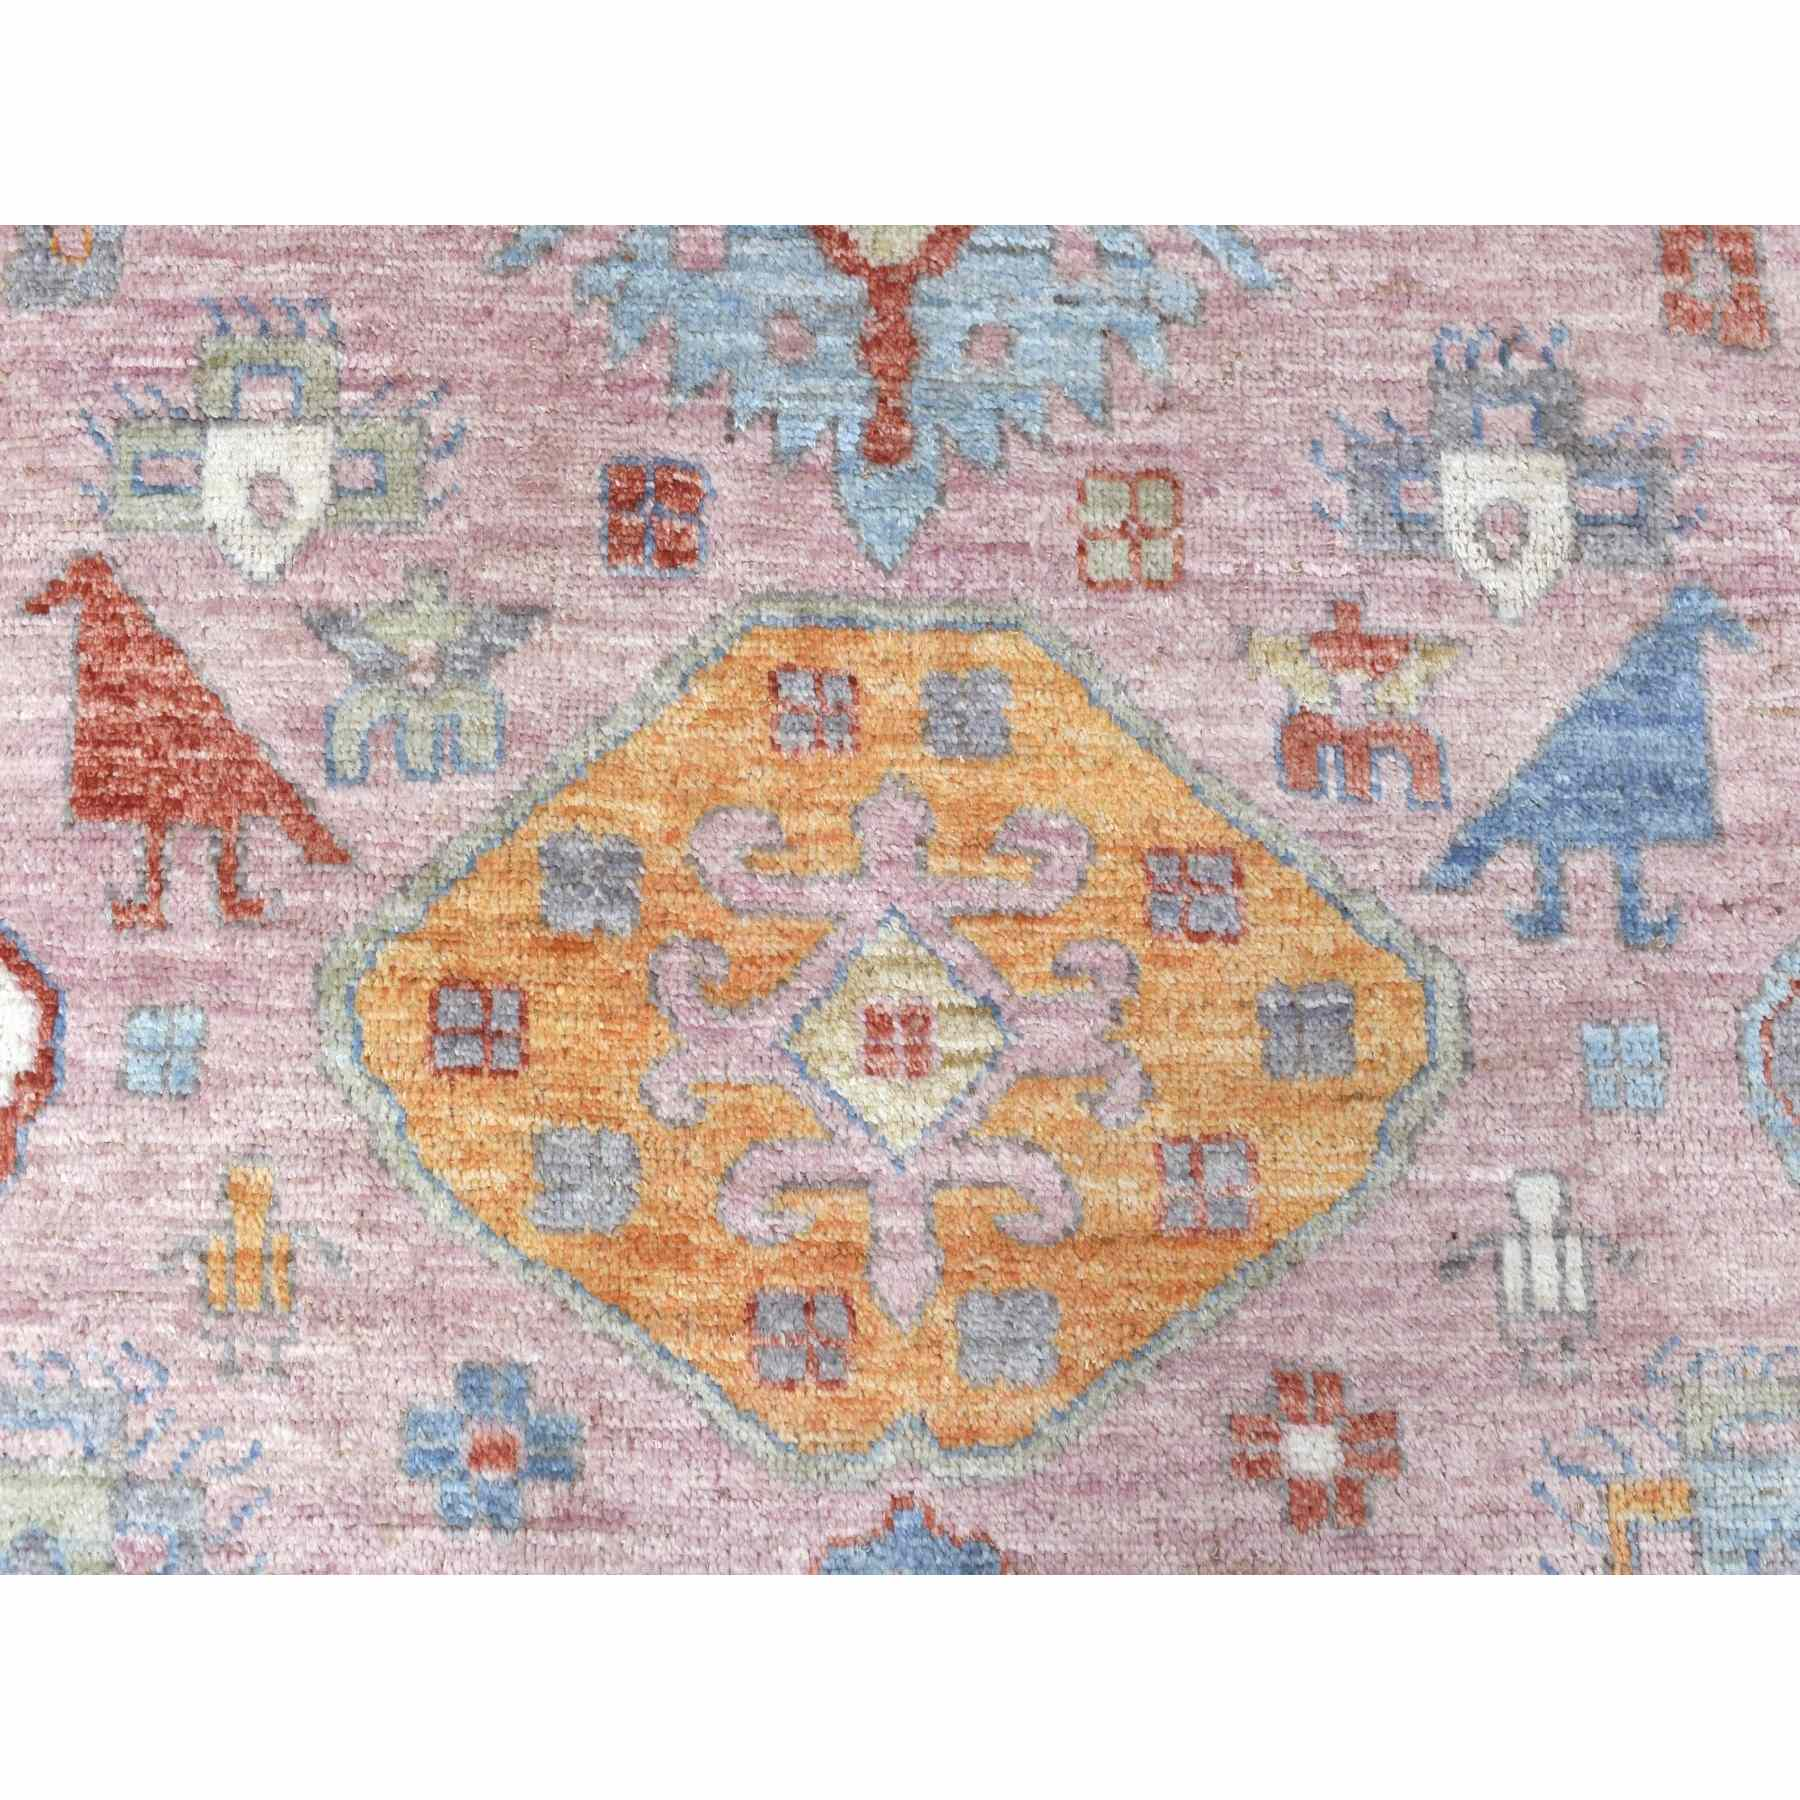 Tribal-Geometric-Hand-Knotted-Rug-336655